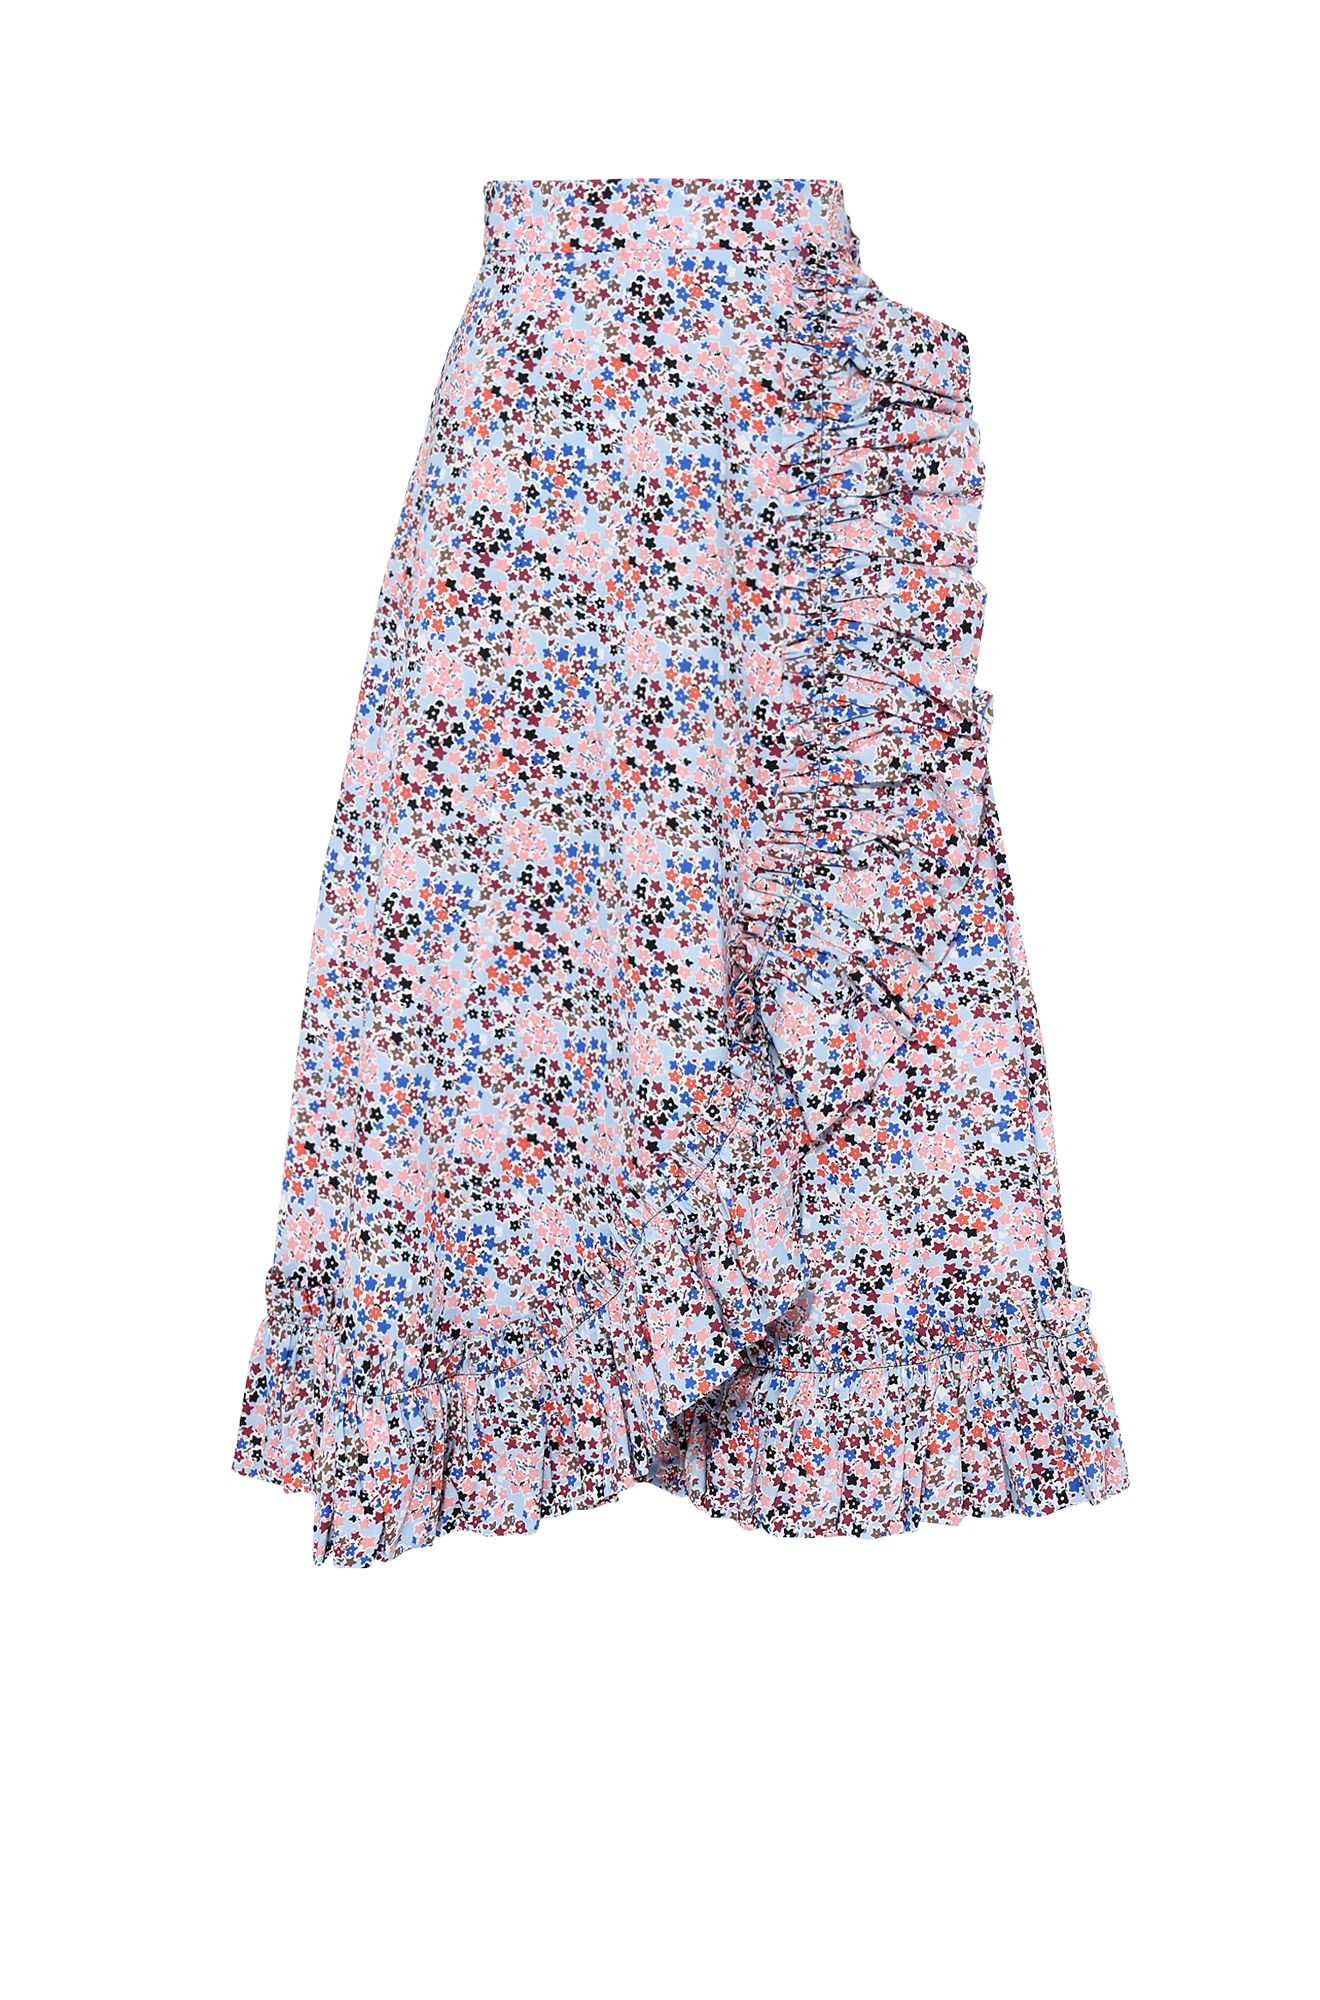 Wraparound skirt with flower micro pattern